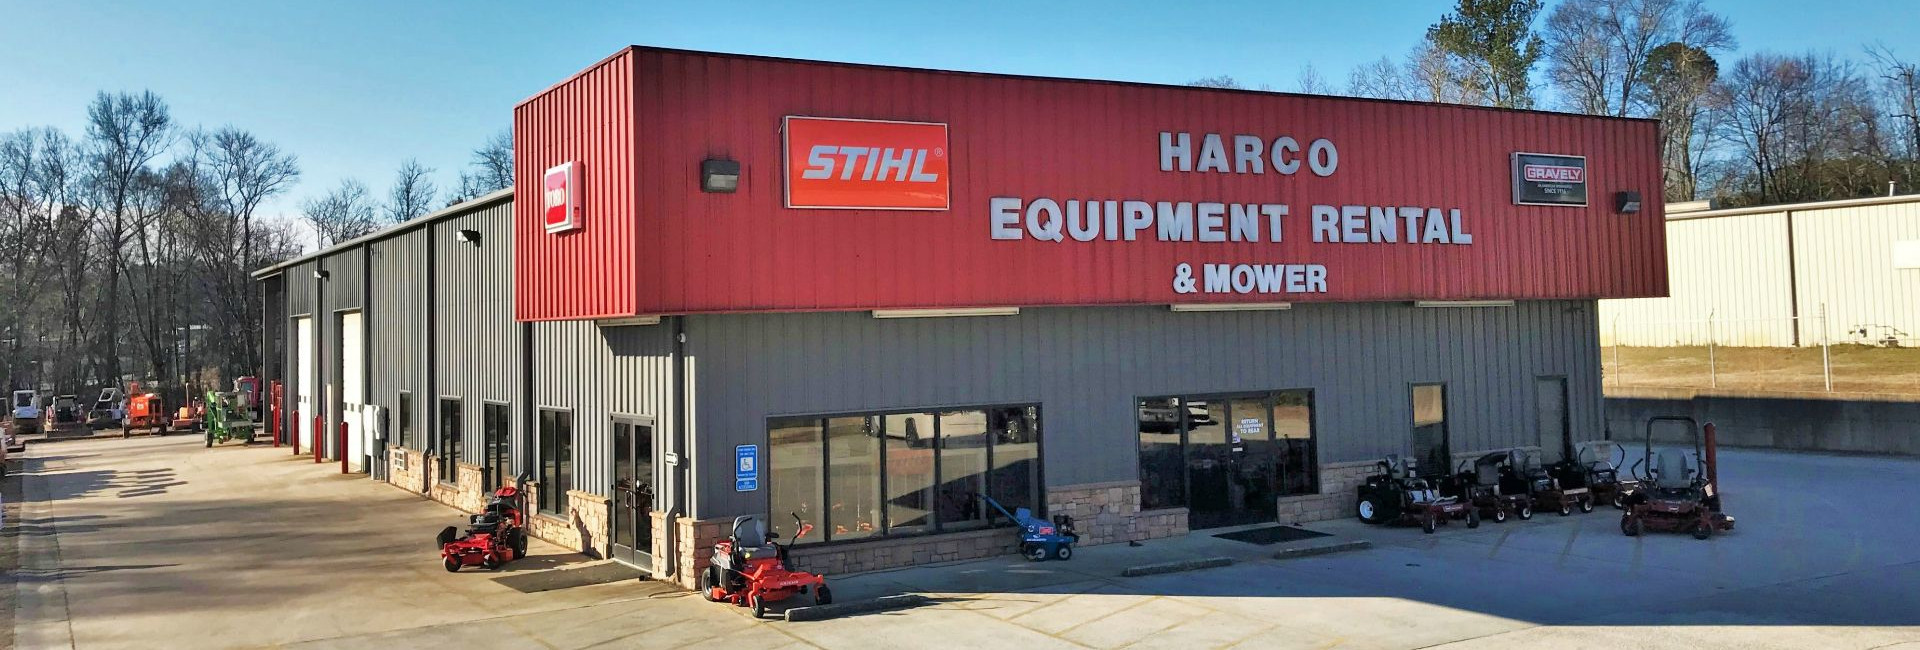 Equipment Rentals in Northeast Georgia